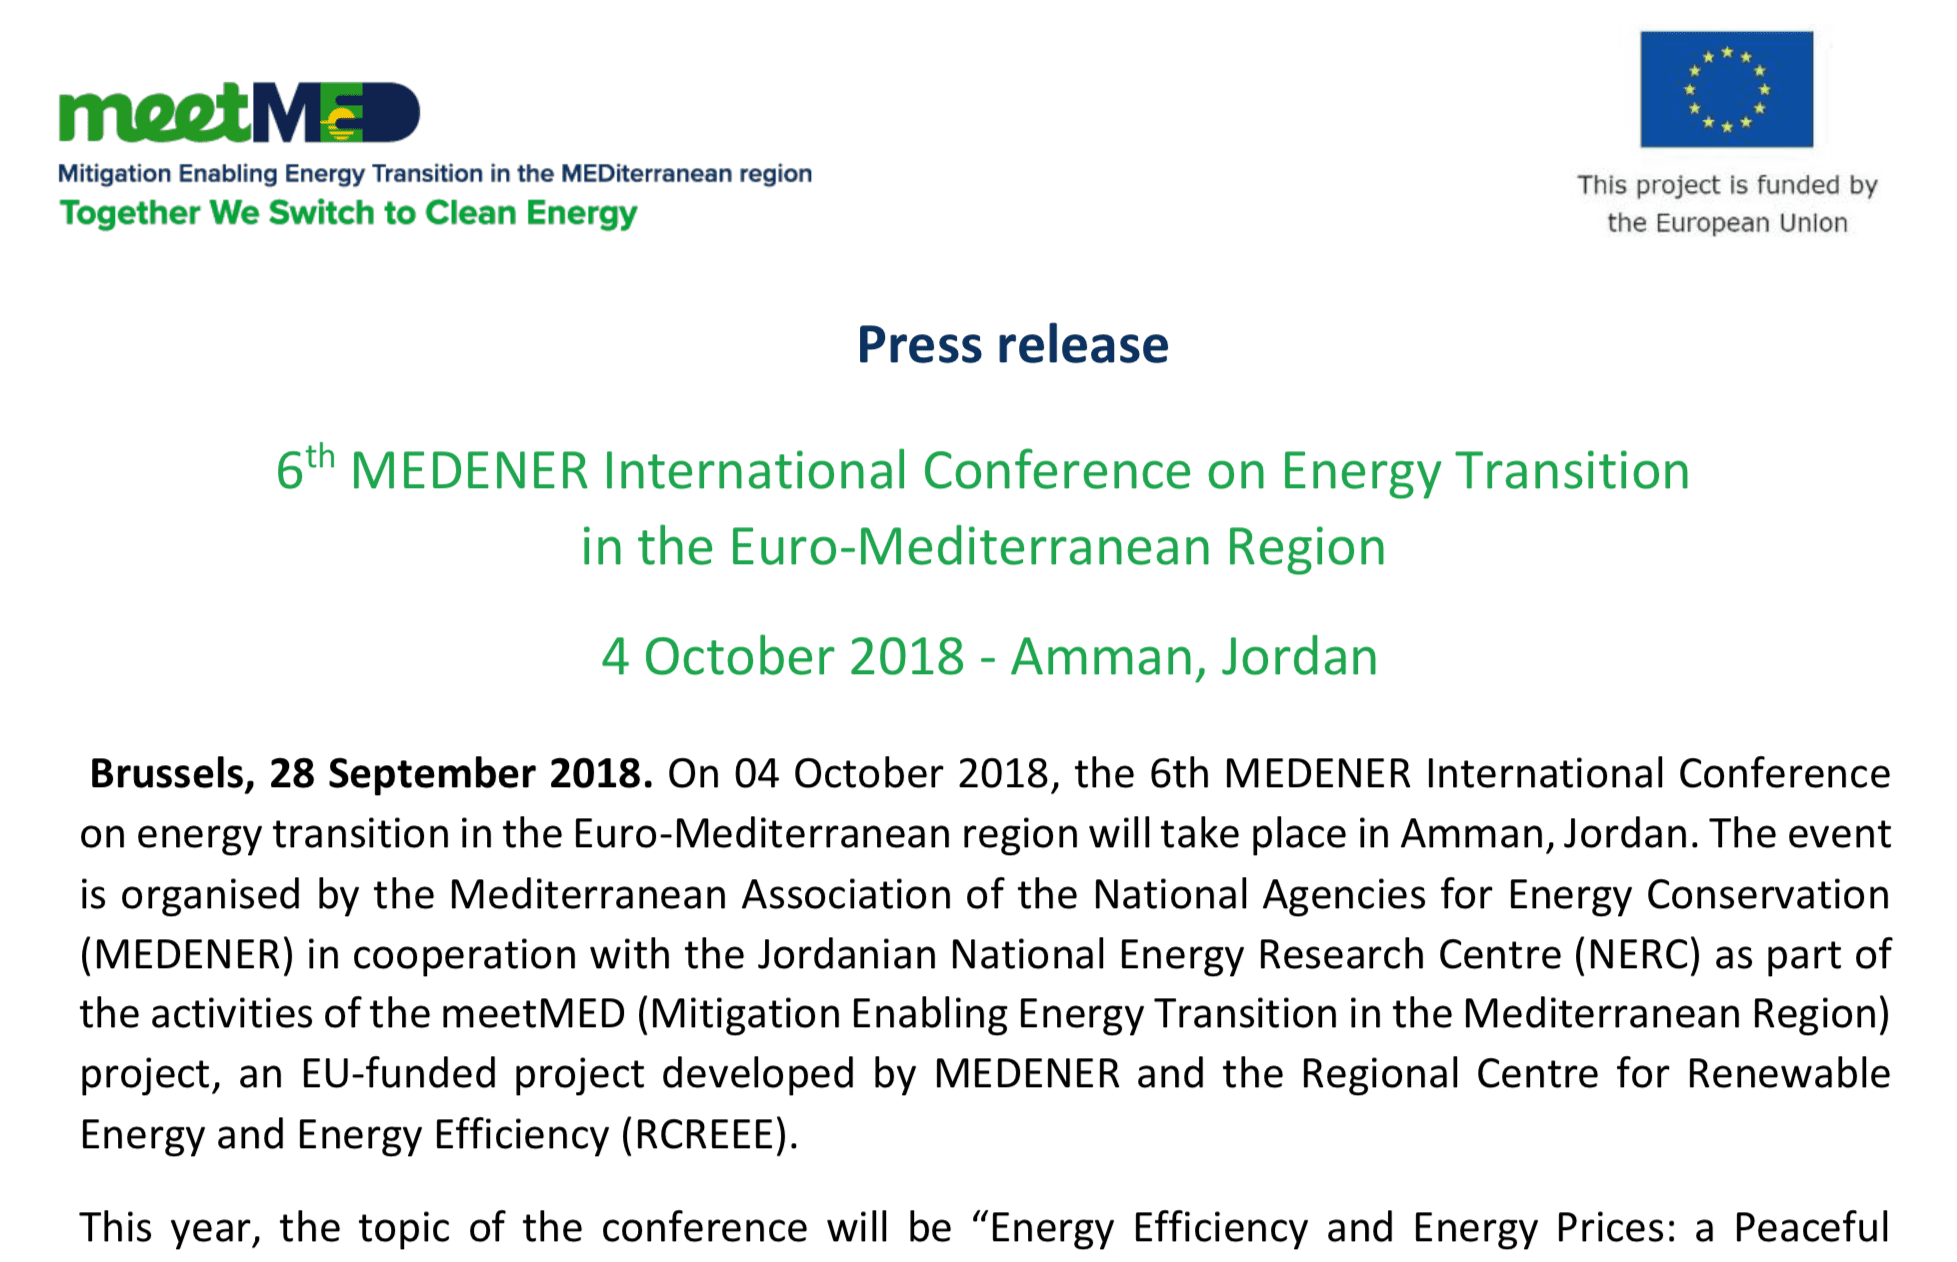 6th MEDENER International Conference on Energy Transition in the Euro-Mediterranean Region